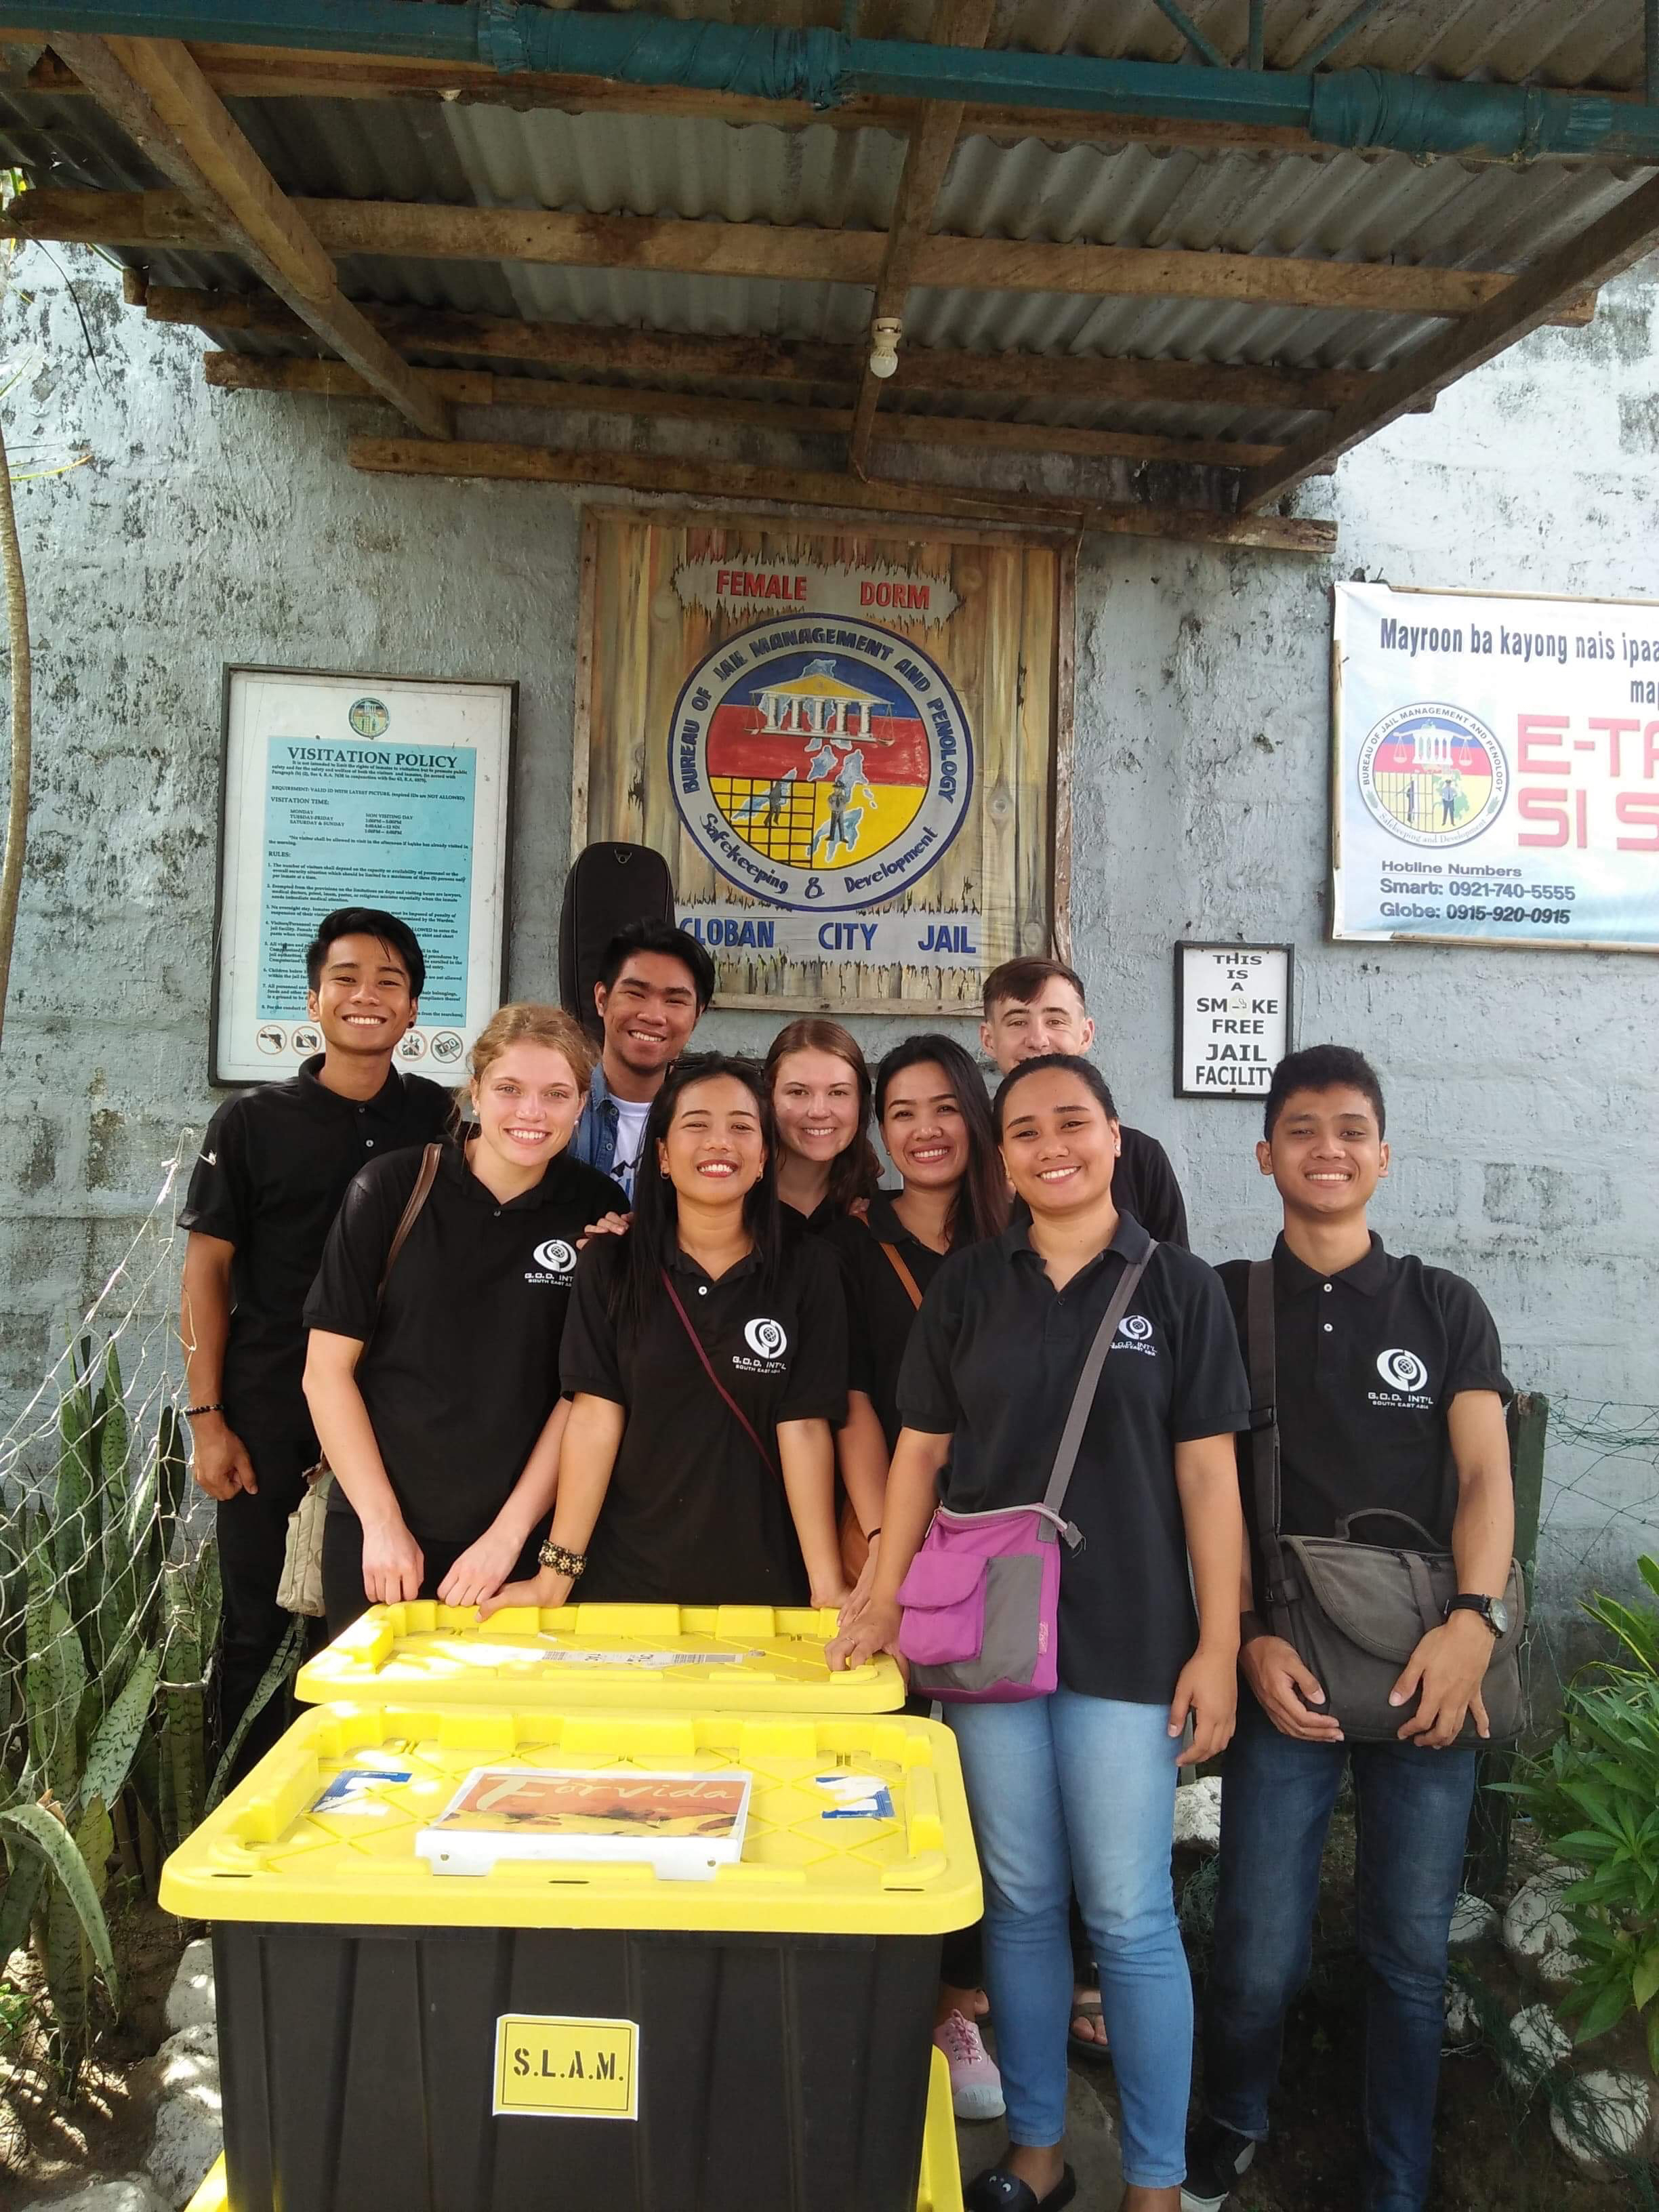 The 2018 Summer Immersion team in Tacloban visited the women's prison each week, this time they put on a special musical performance for the women.